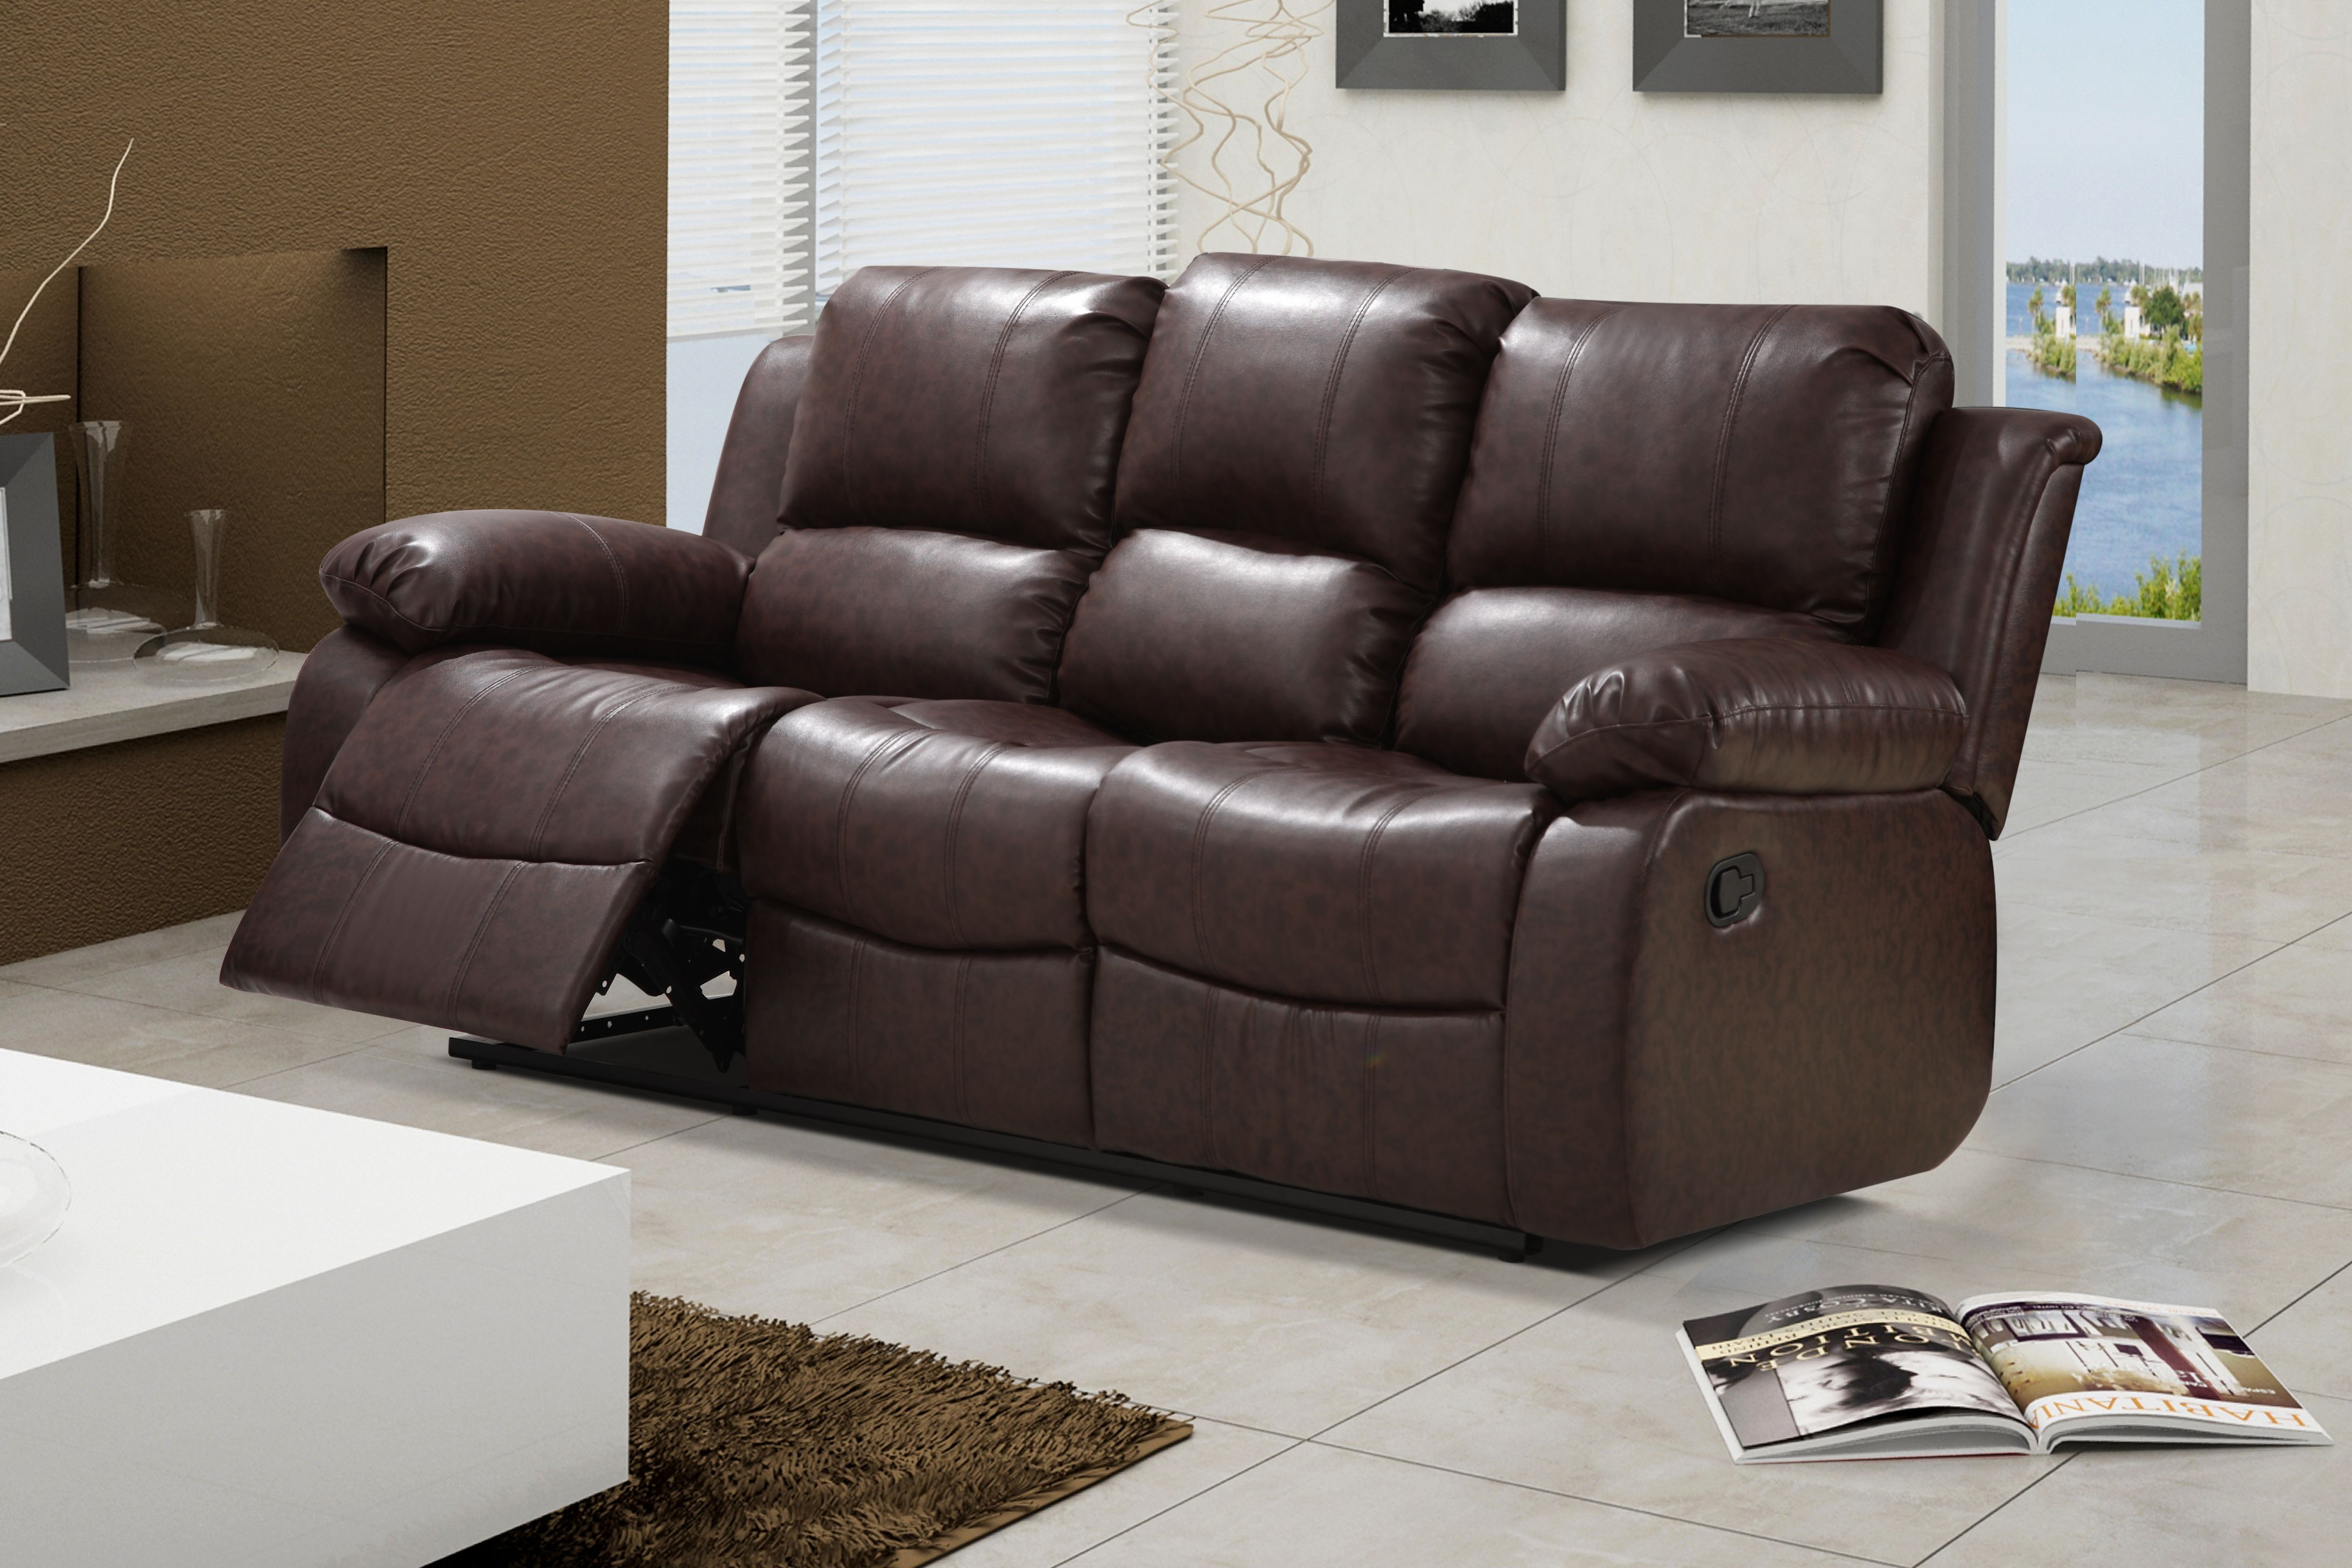 Zoey Reddish Brown Bonded Leather Living Room Reclining Sofa With Drop Down  Tea Table